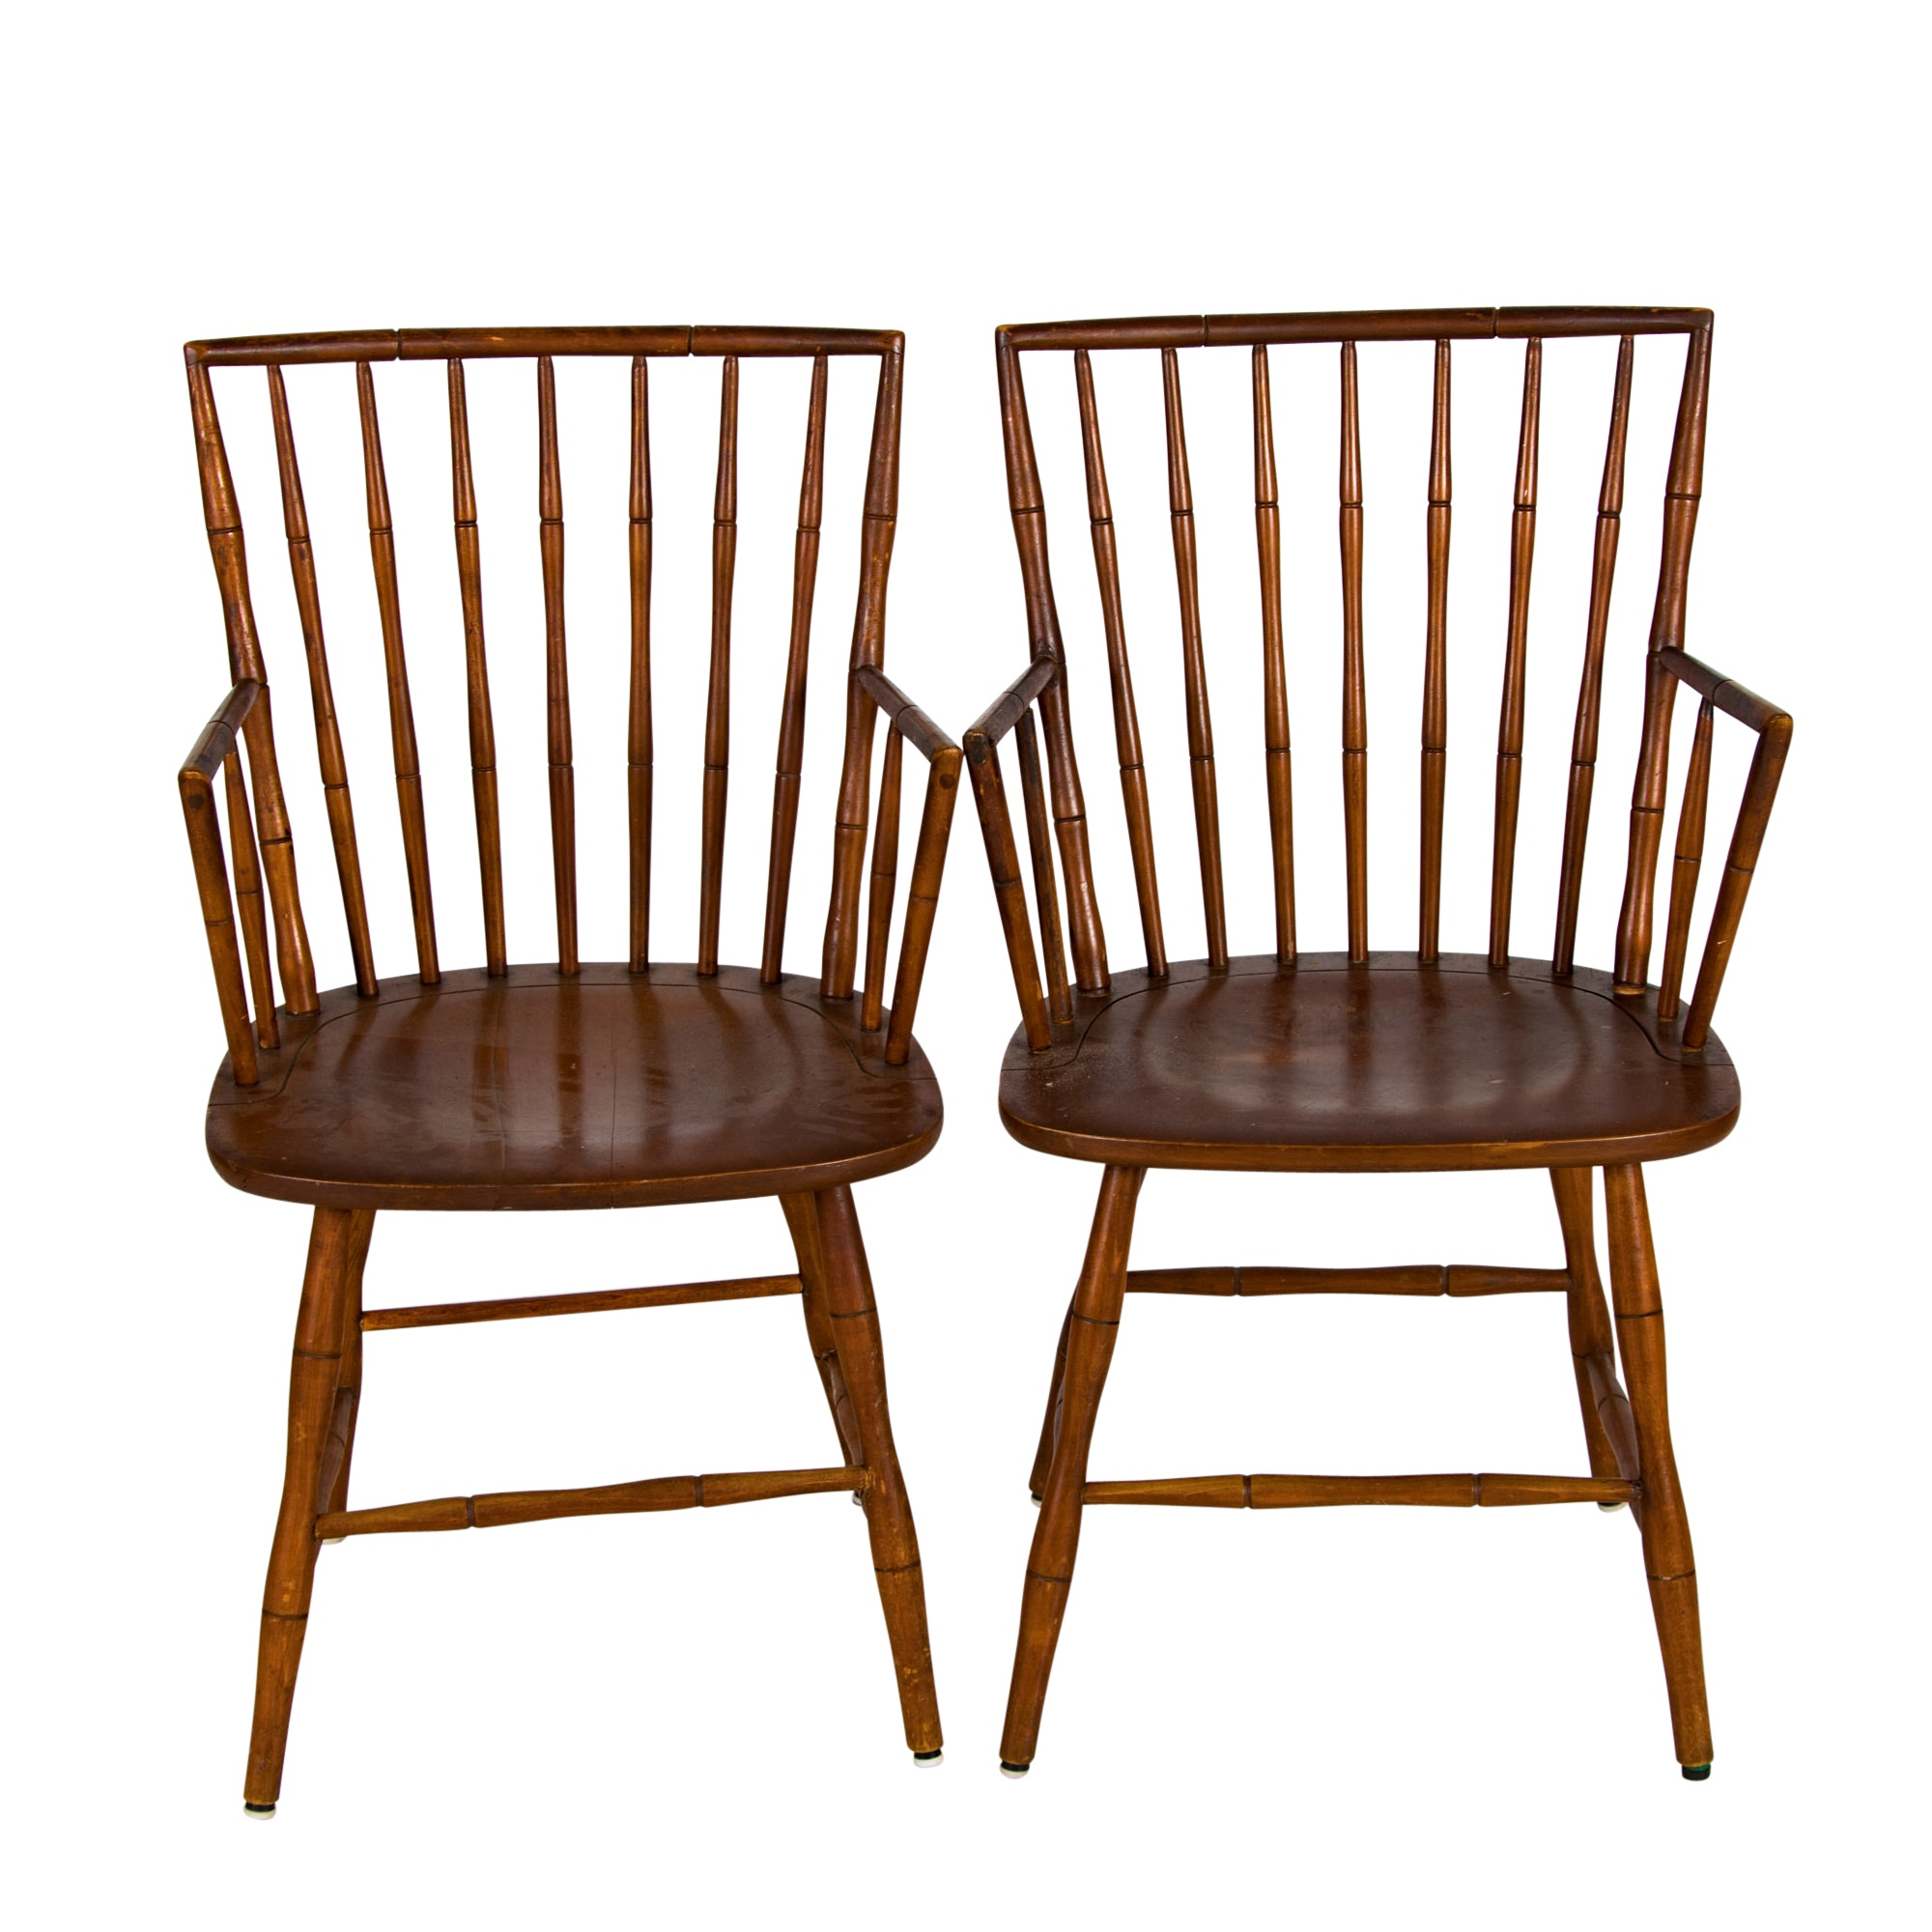 Pair of Windsor Style Maple Stick-Back Armchairs, 20th Century